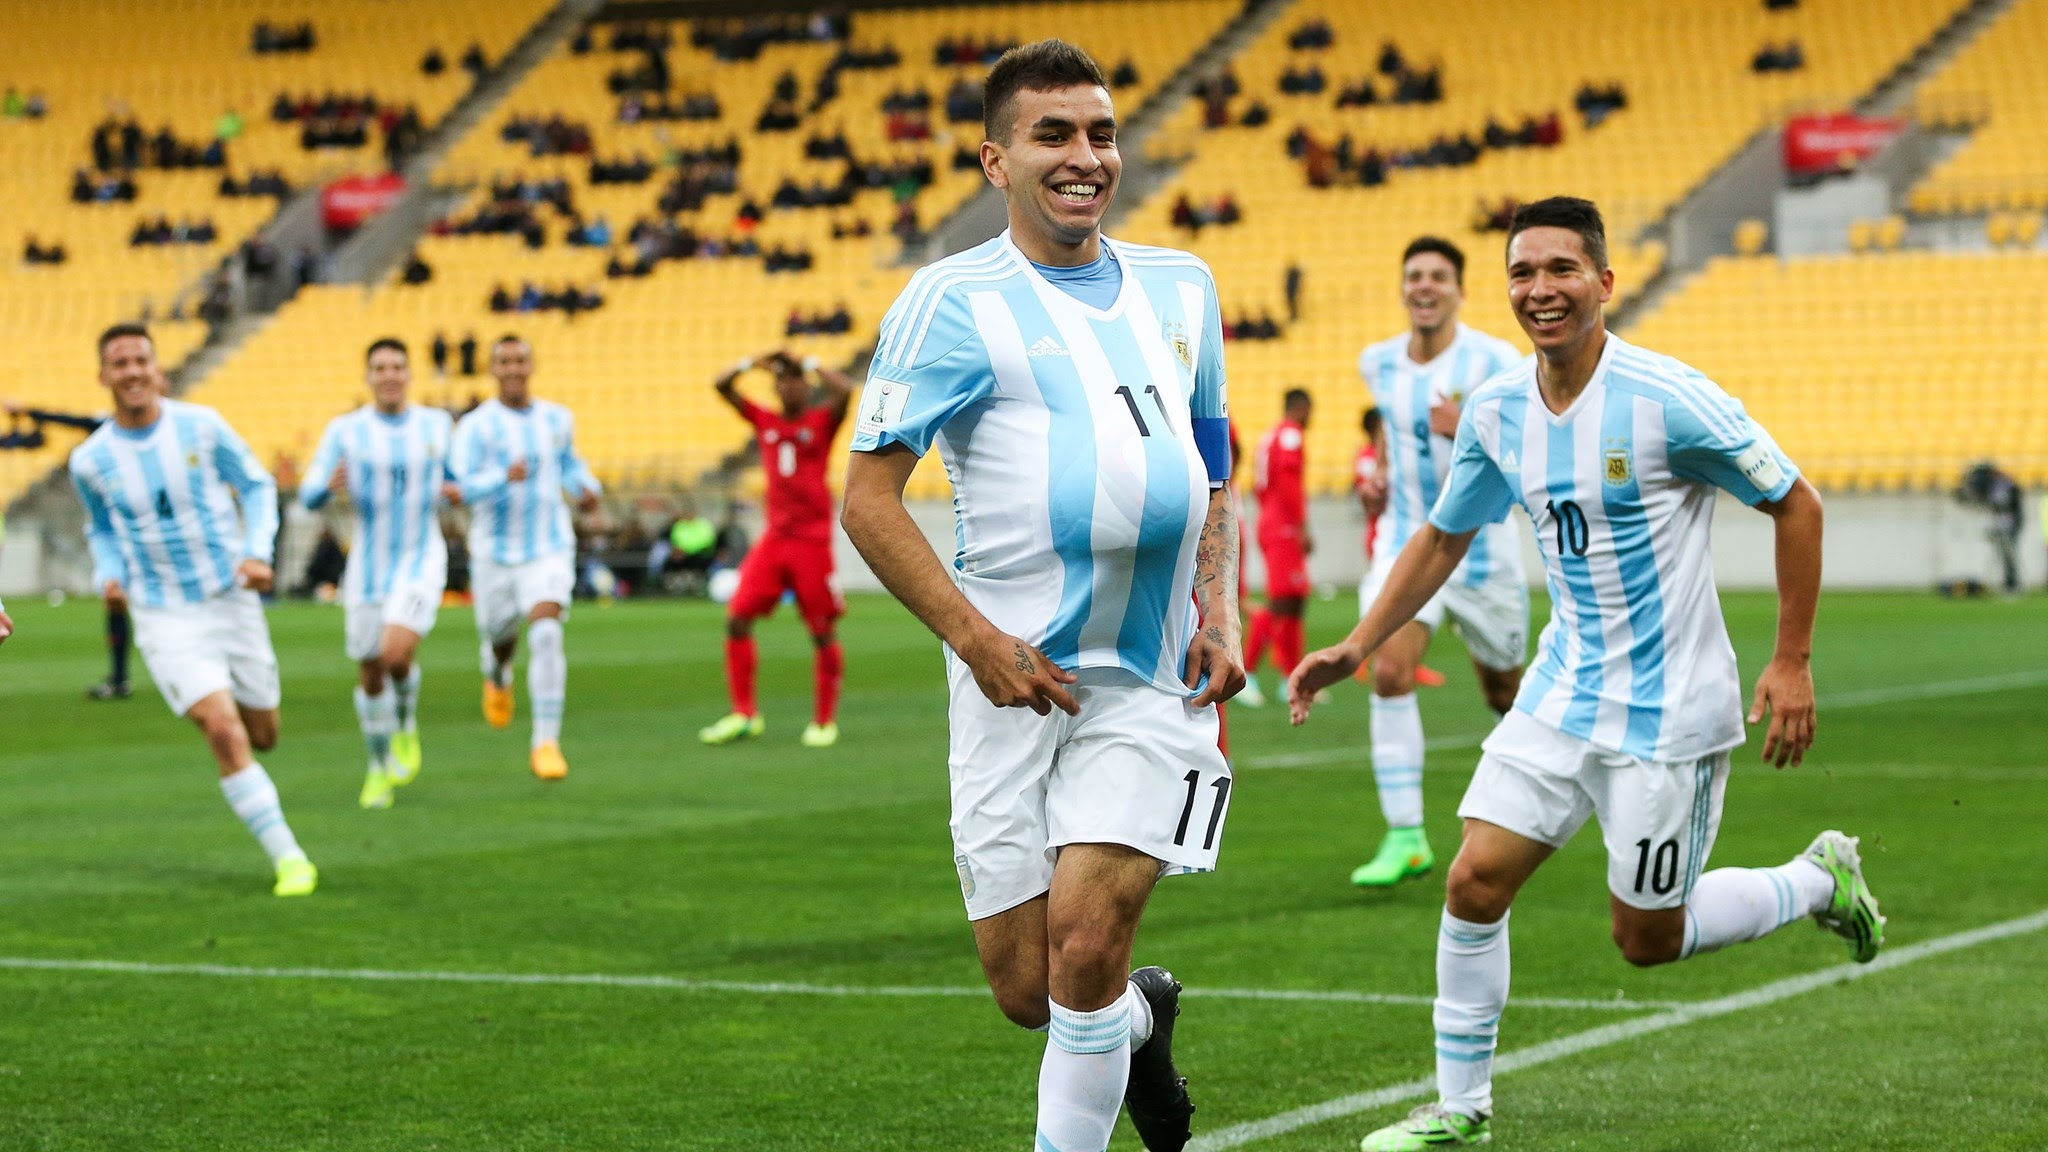 L'EQUIPE NATIONALE ARGENTINE A TRAVERS L'HISTOIRE